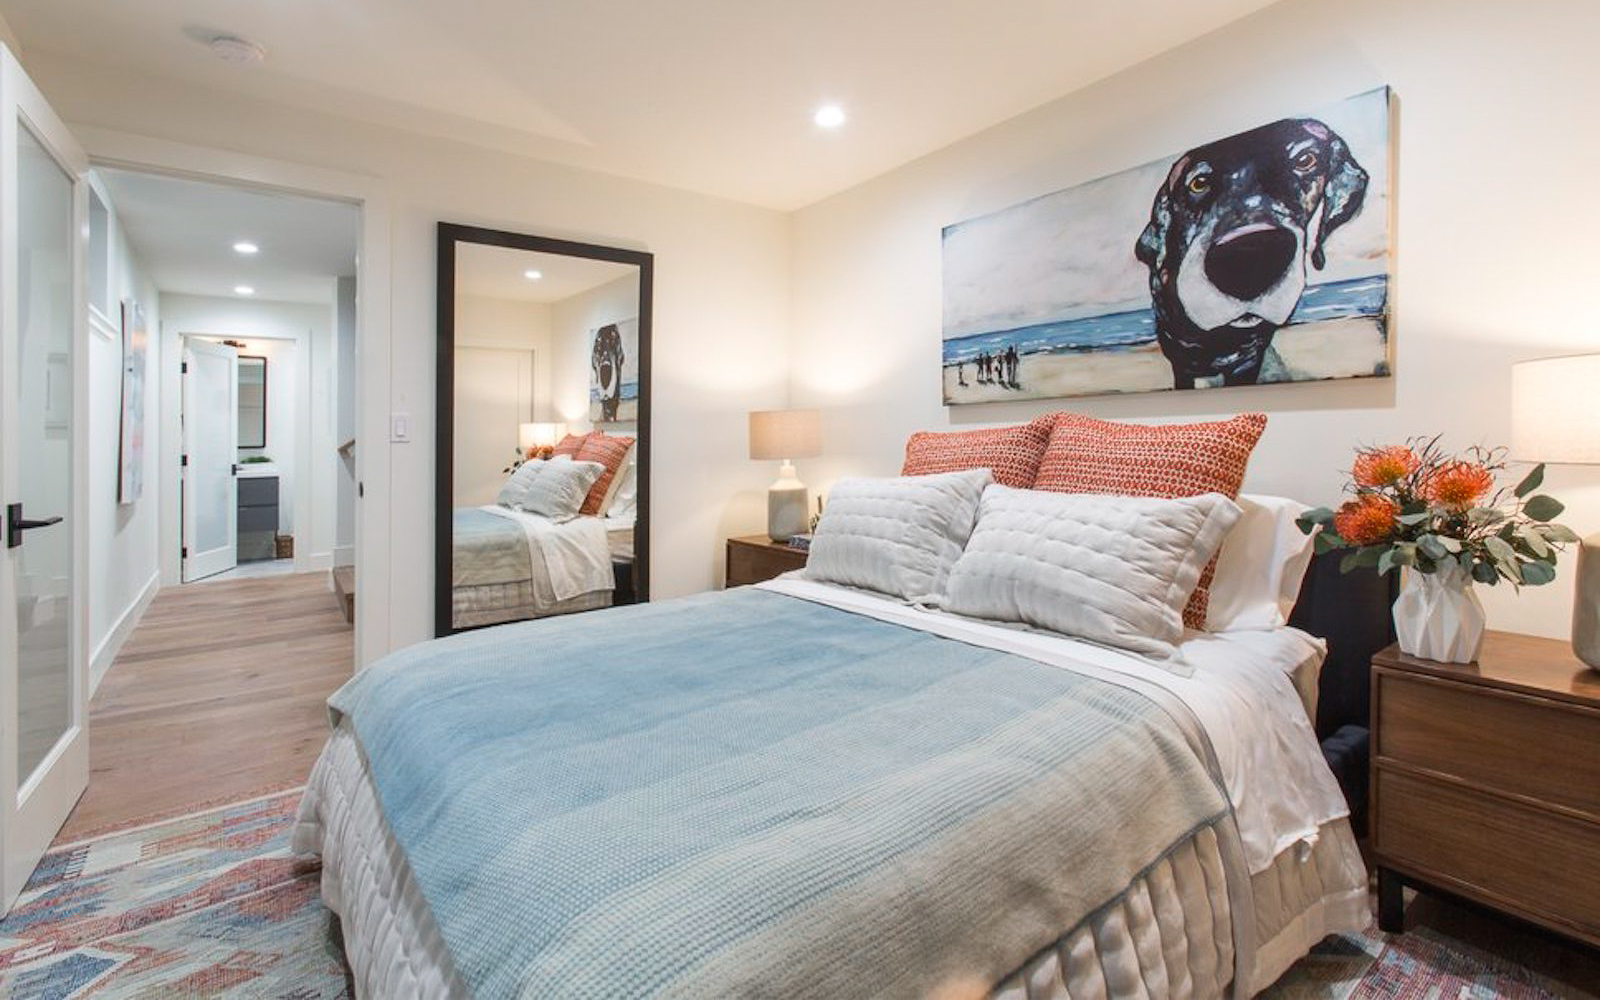 A styled bedroom with a large bed in the center and an illustration of a dog hanging above it.